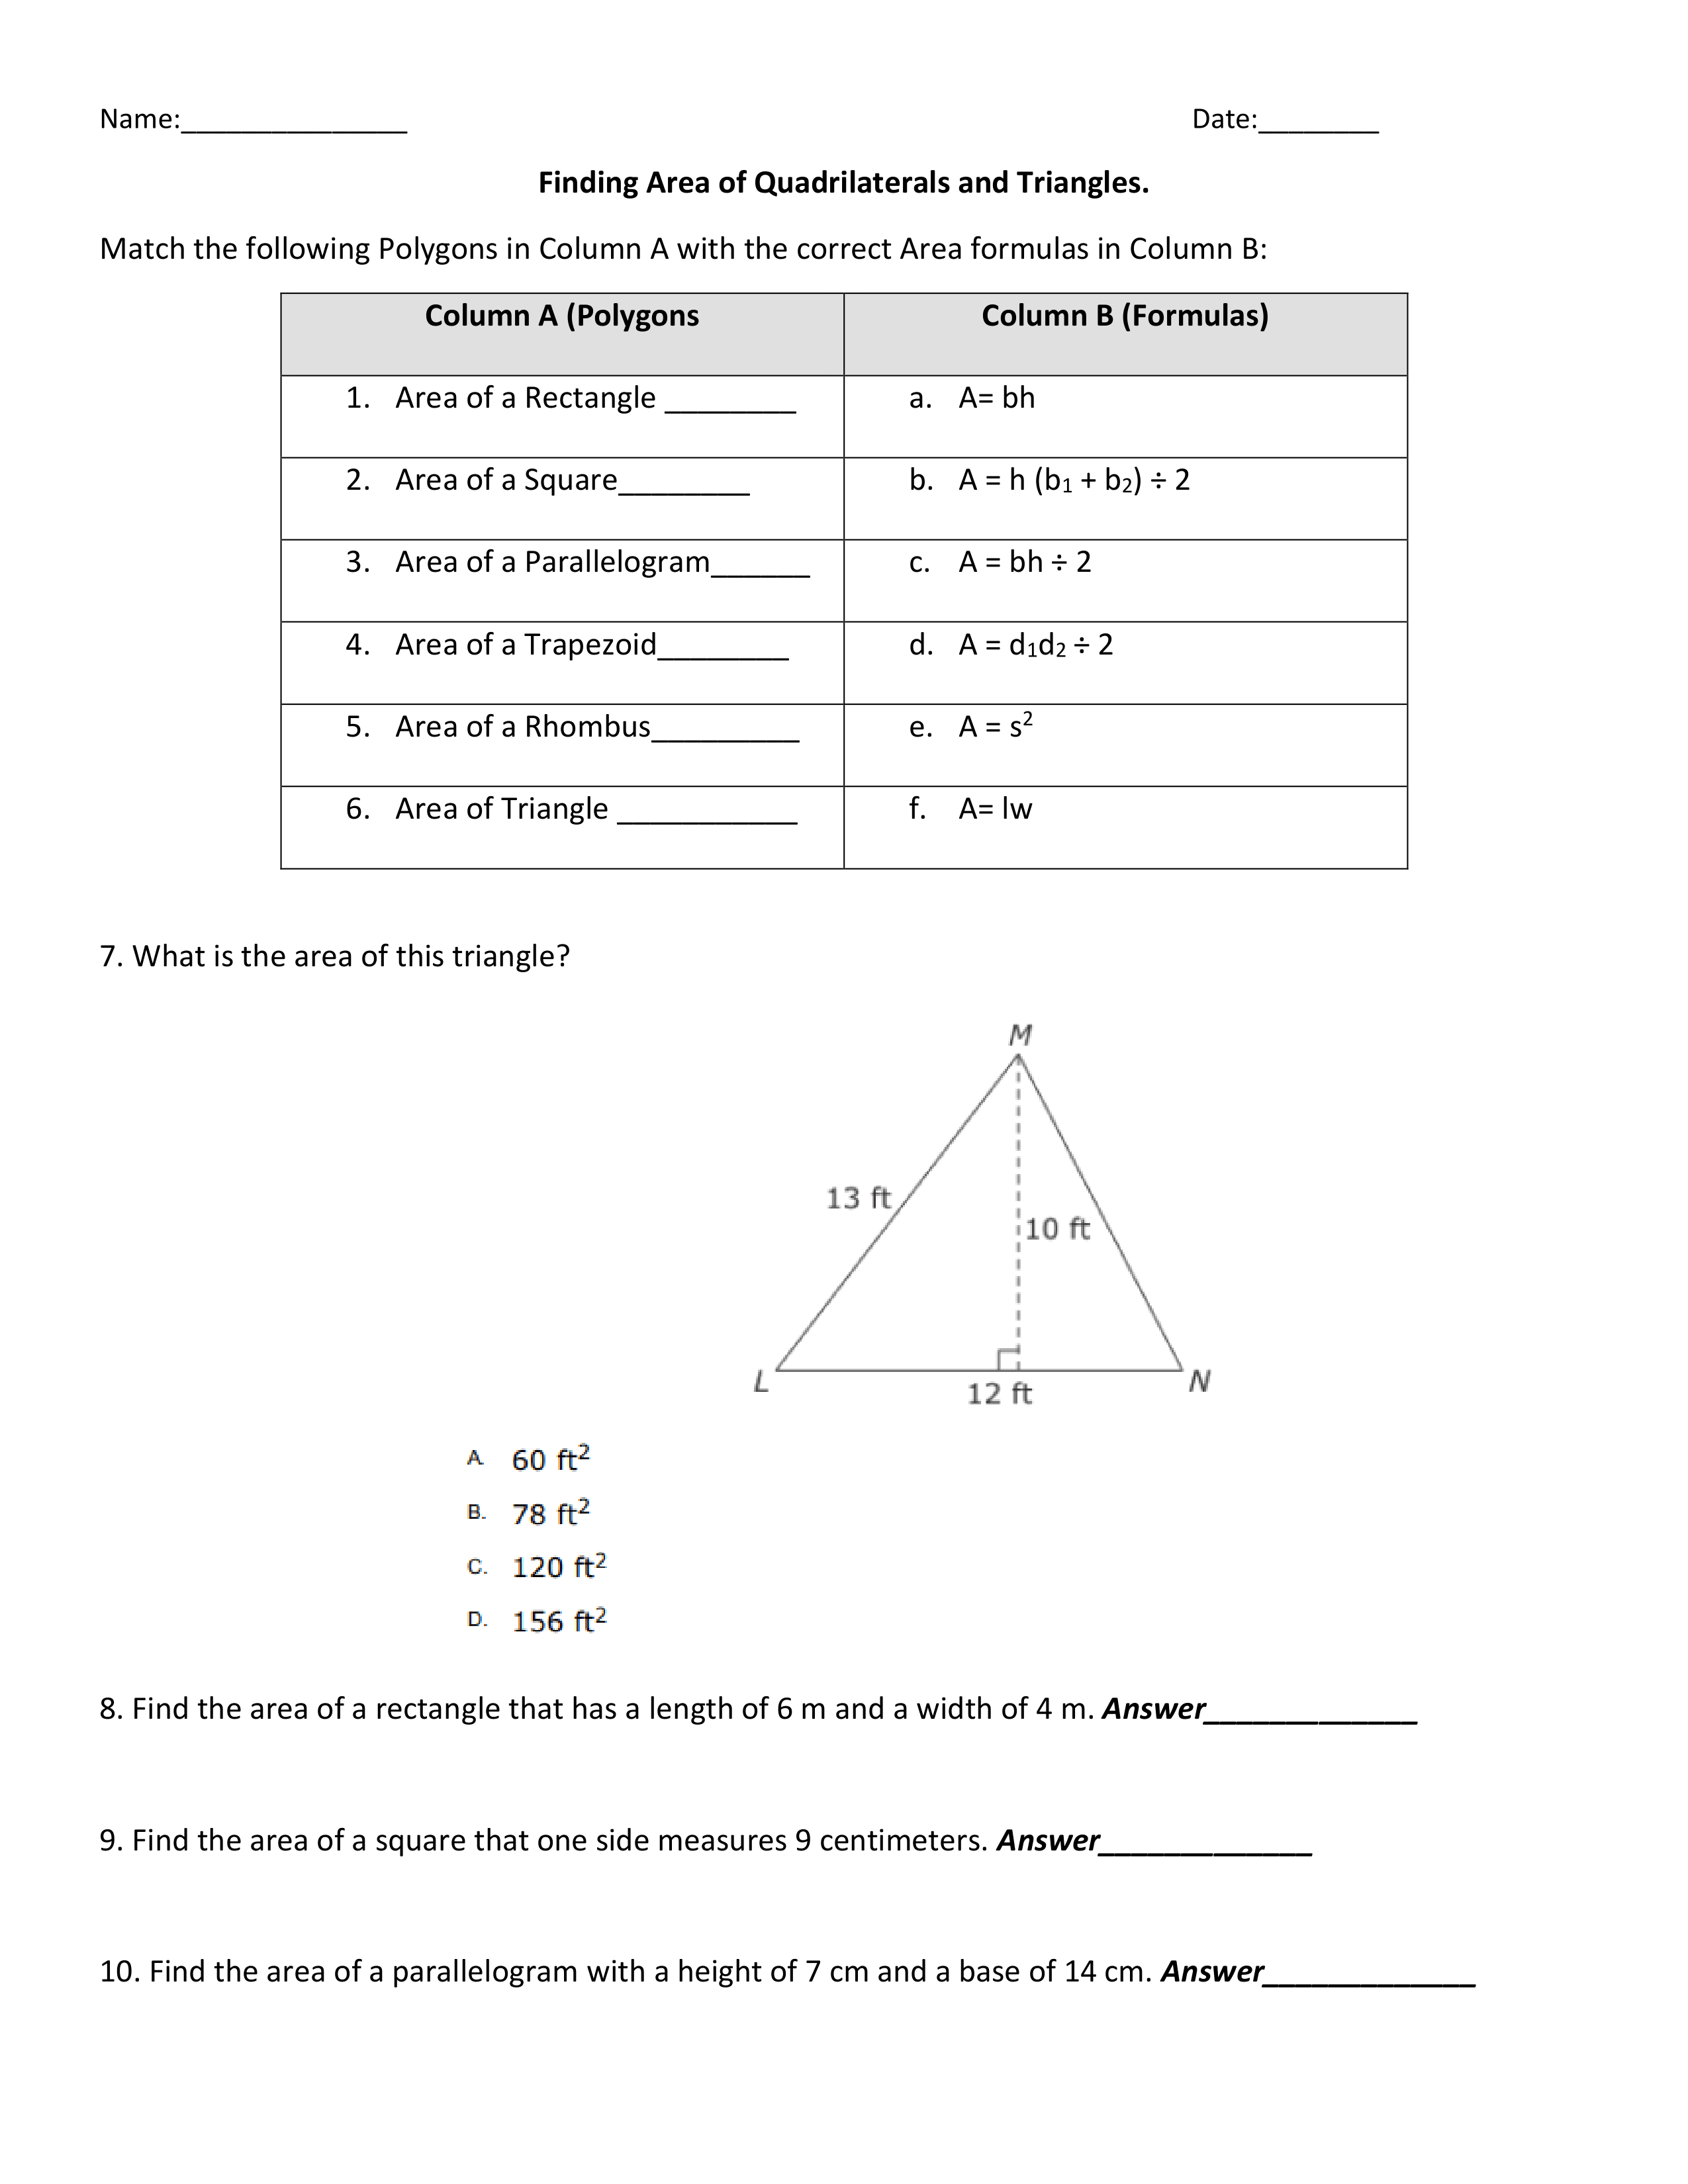 Finding The Area Of Quadrilaterals And Triangles